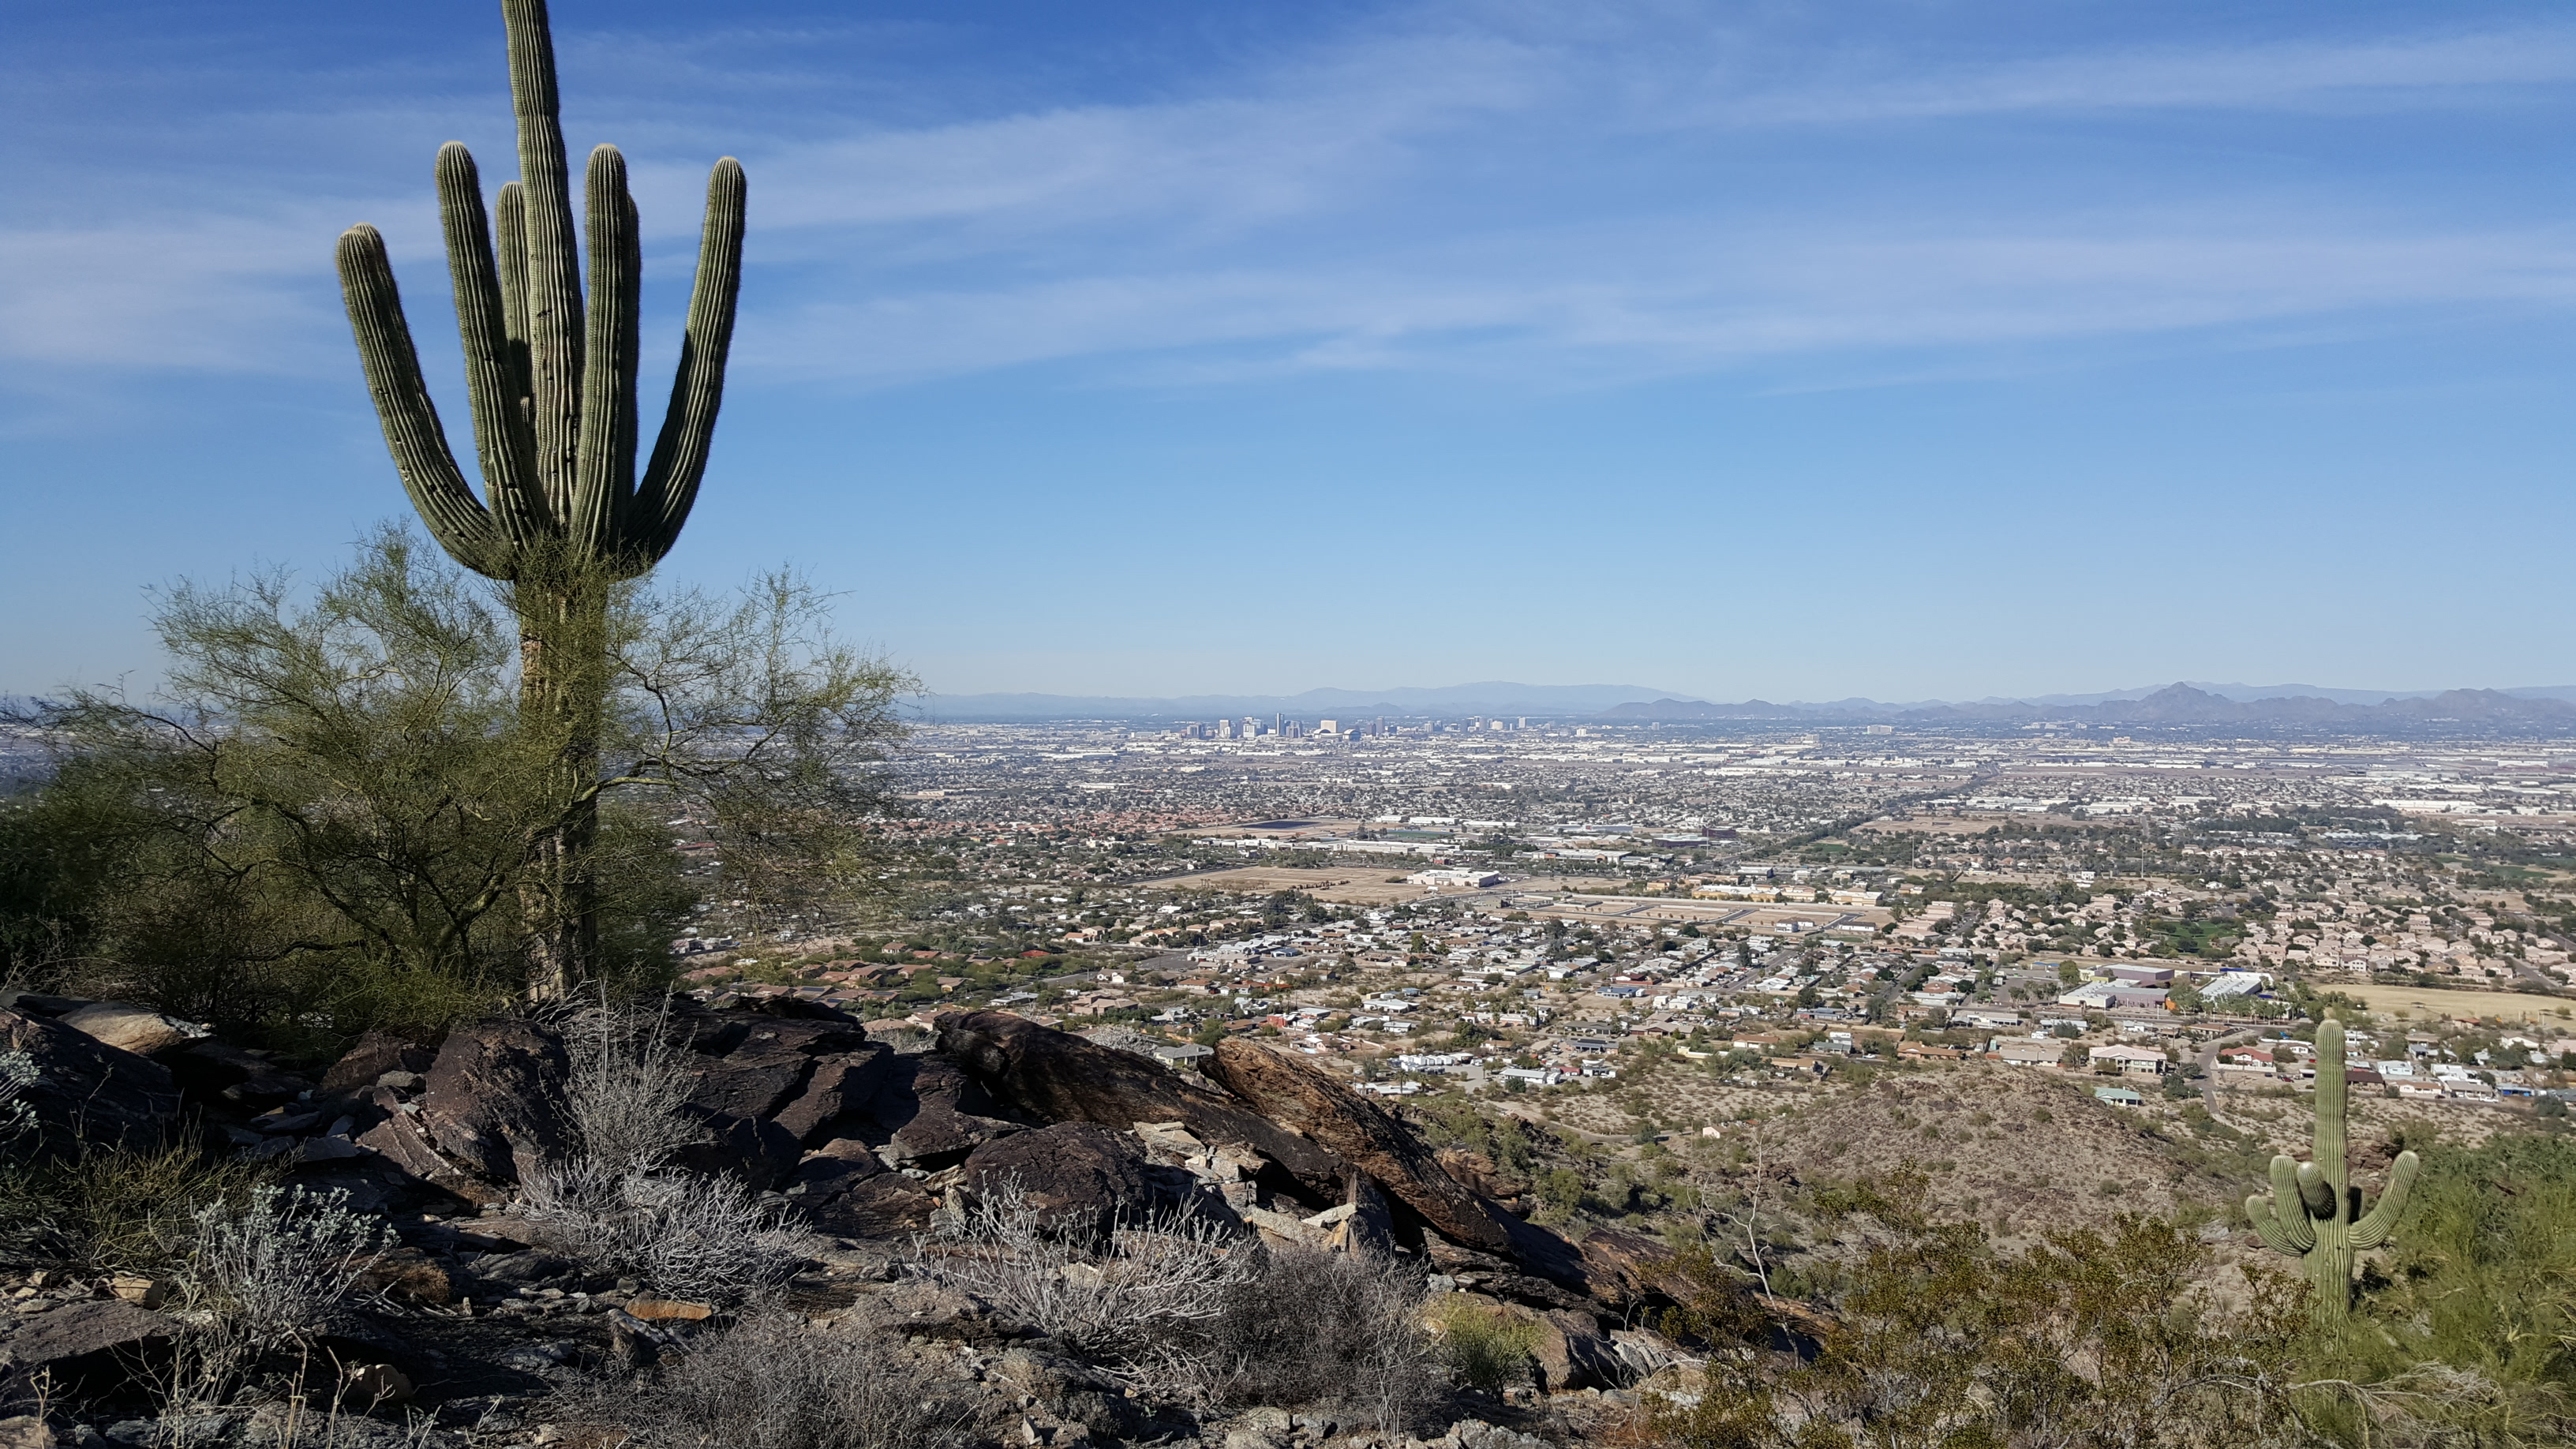 View of Phoenix from the top of South Mountain, Arizona